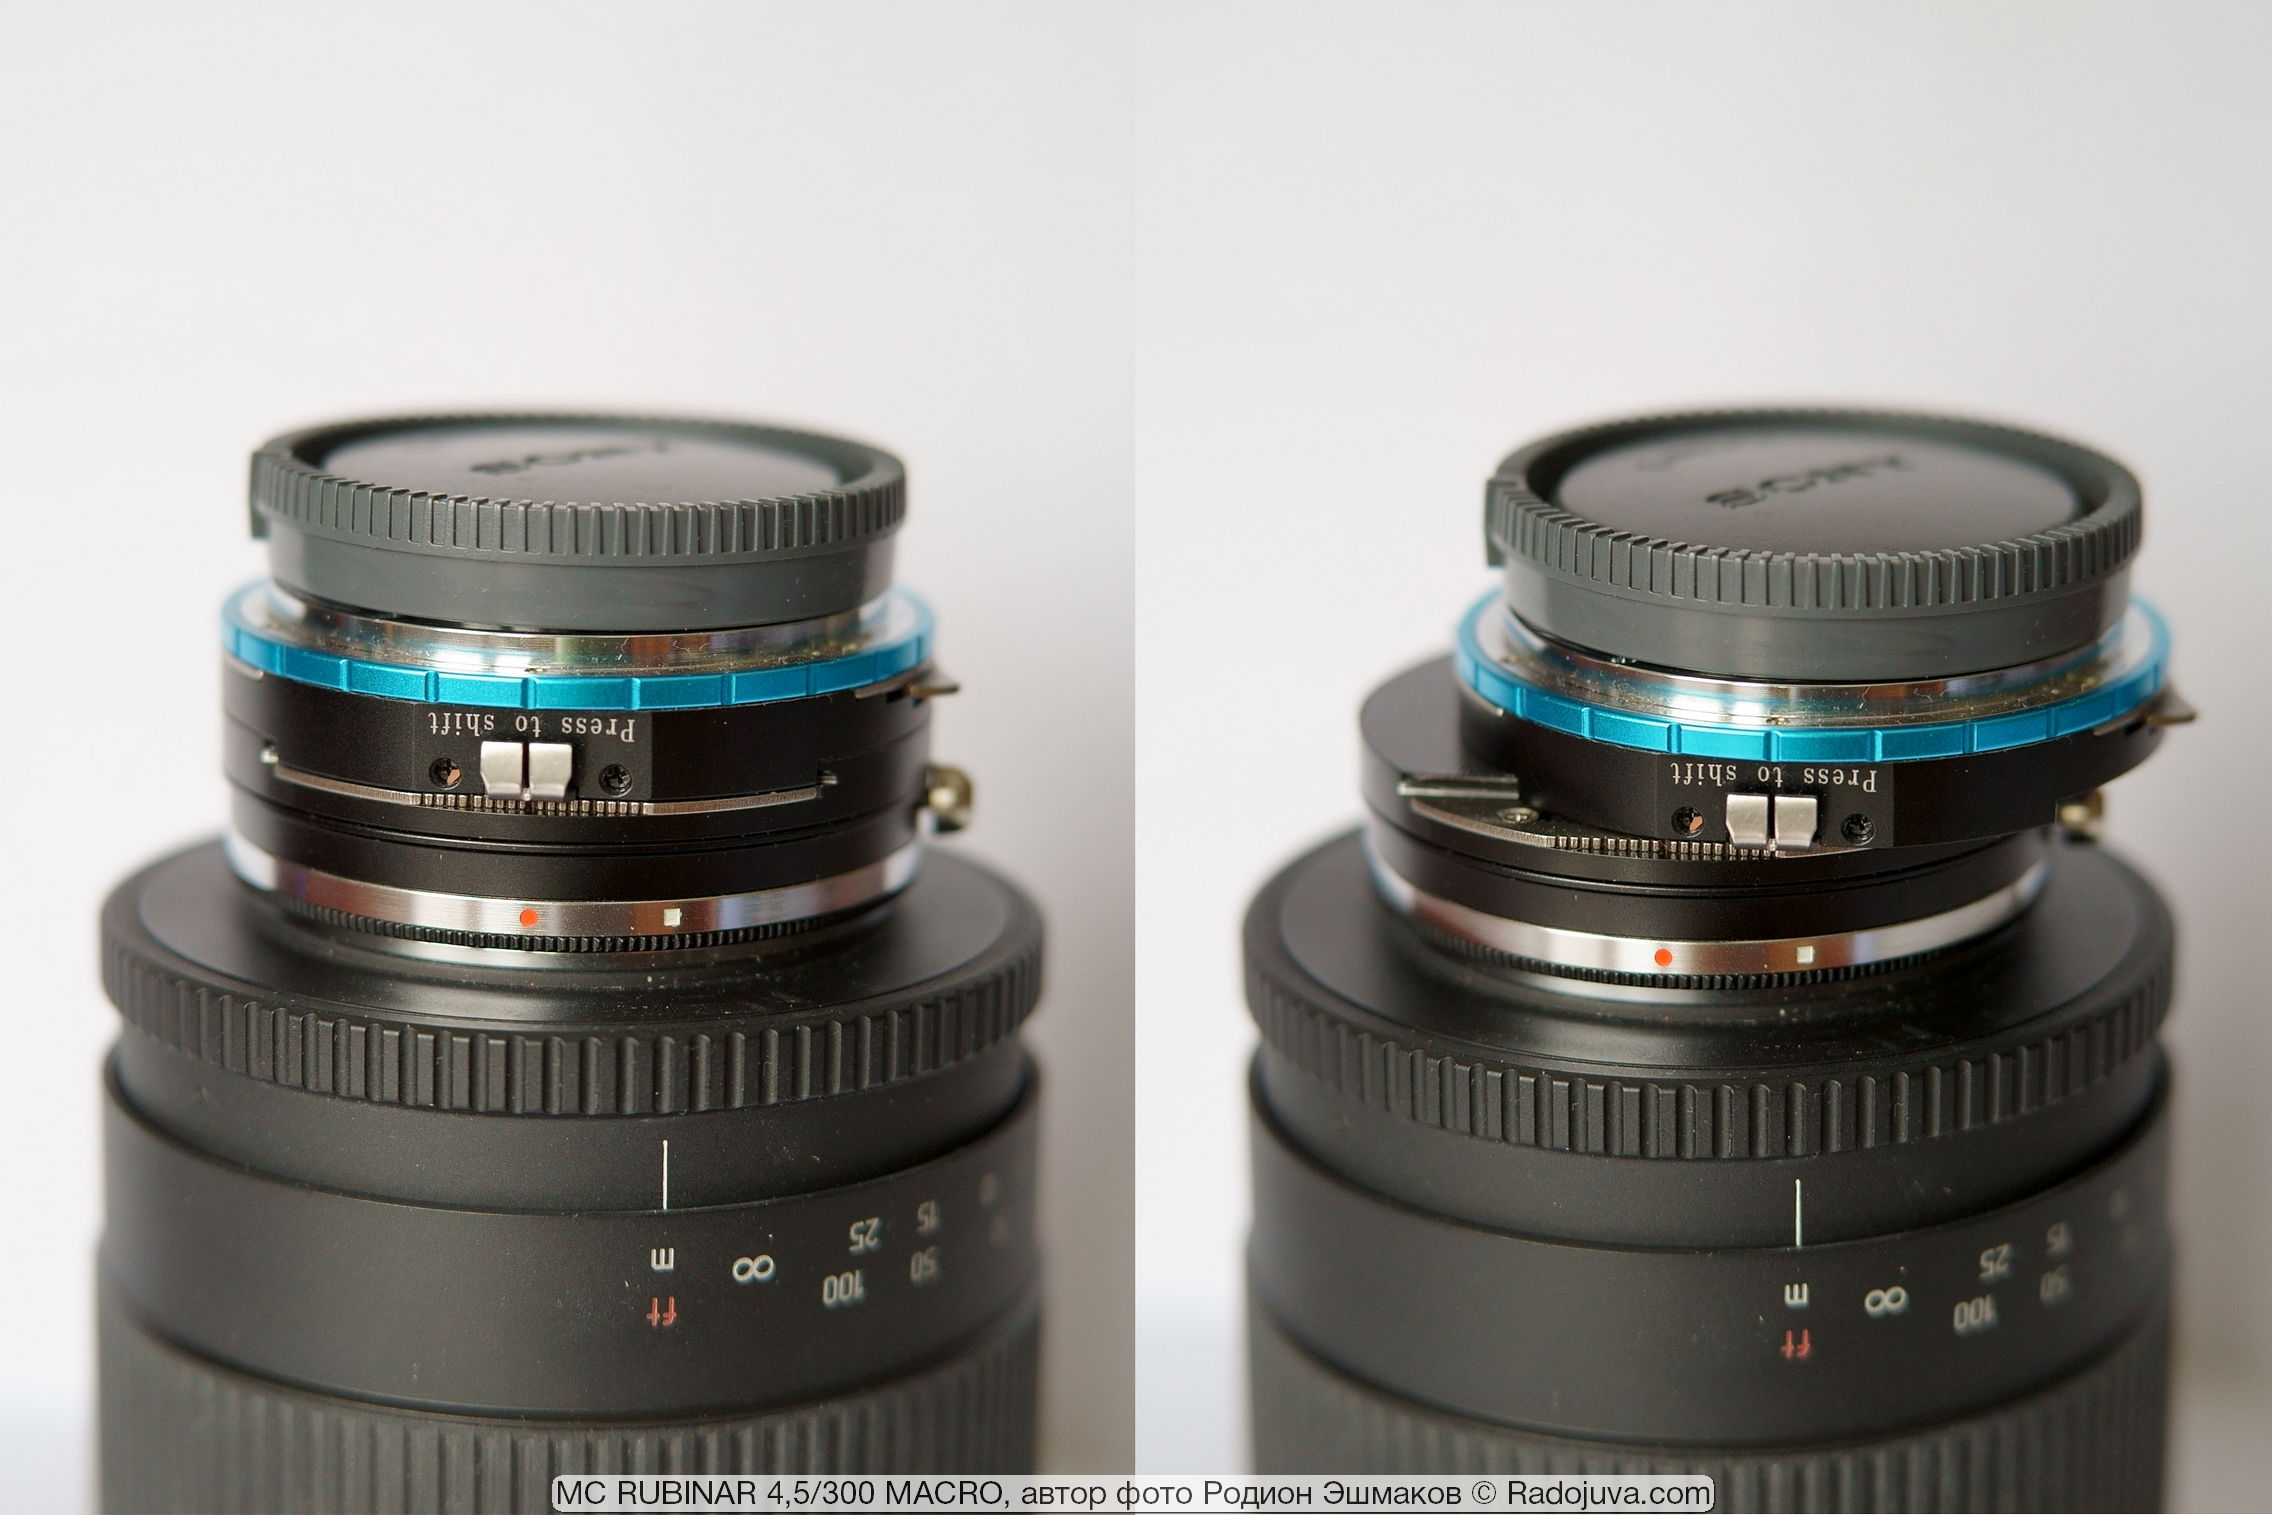 Operation of the Fotodiox Shift EF / FE adapter with a Rubinar 300 / 4.5 lens.